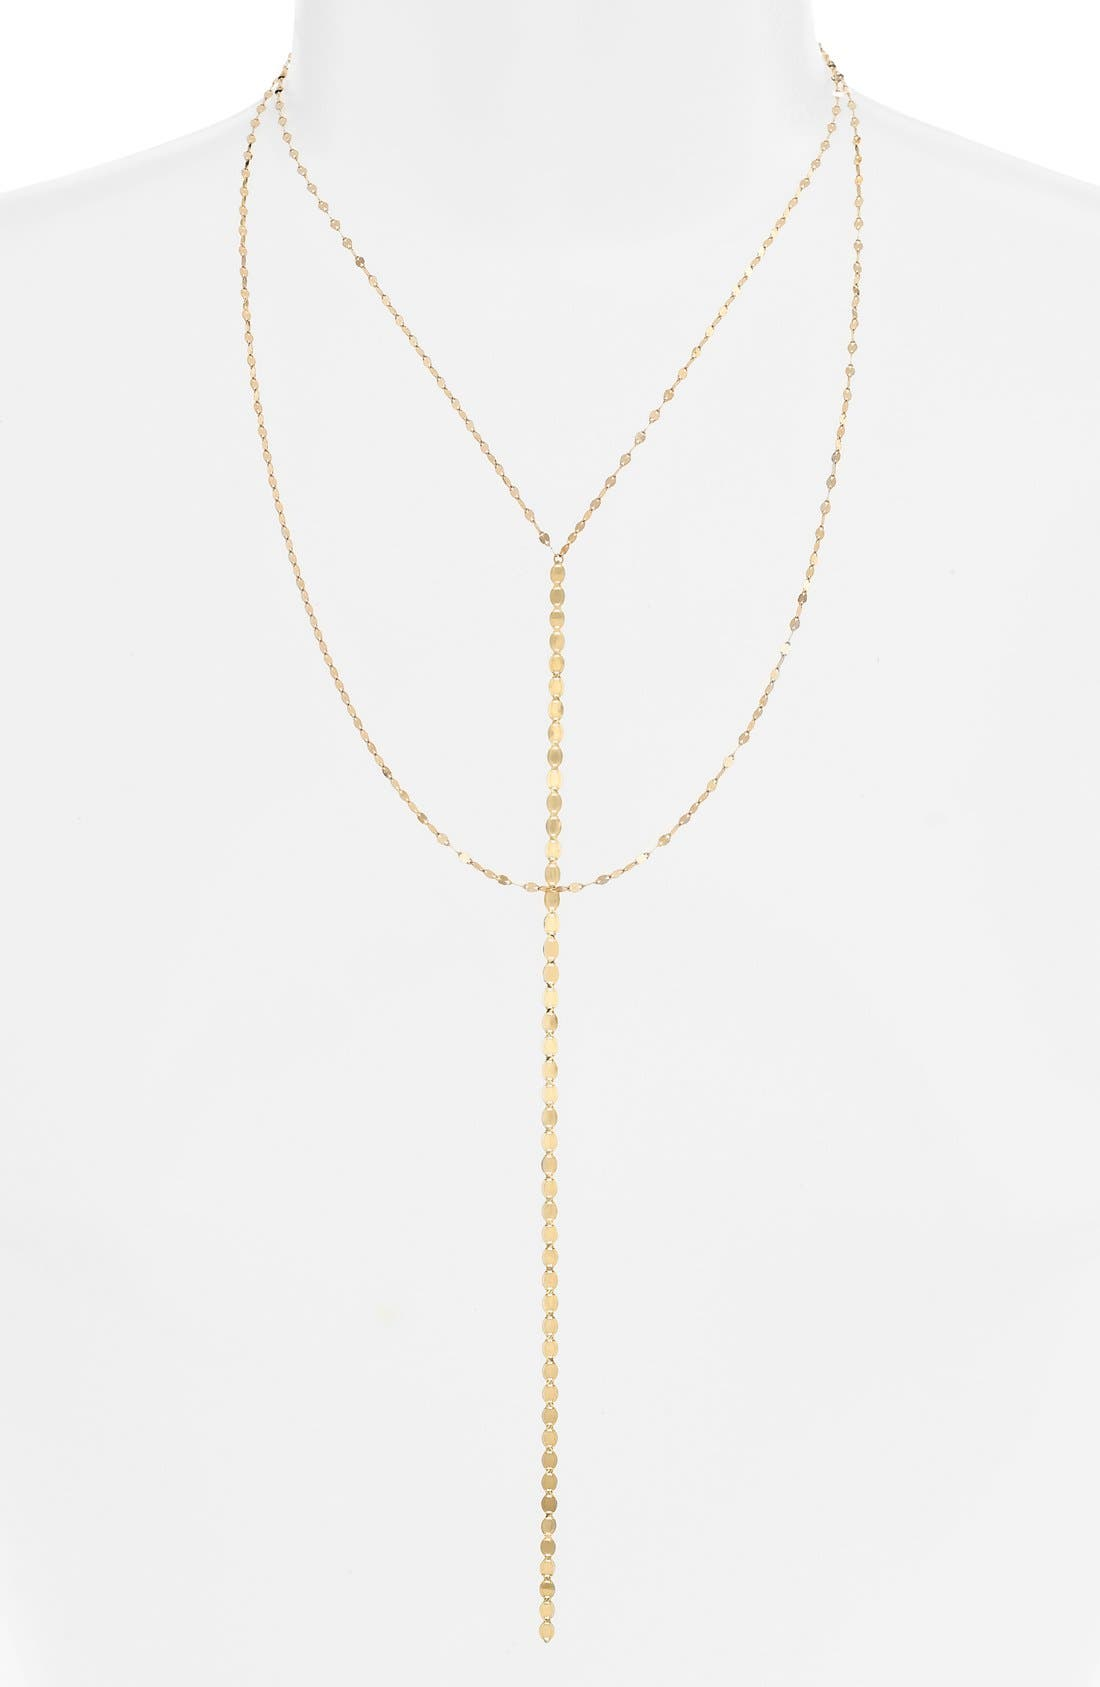 'Nude Blake' Multistrand Drop Necklace,                             Main thumbnail 1, color,                             YELLOW GOLD